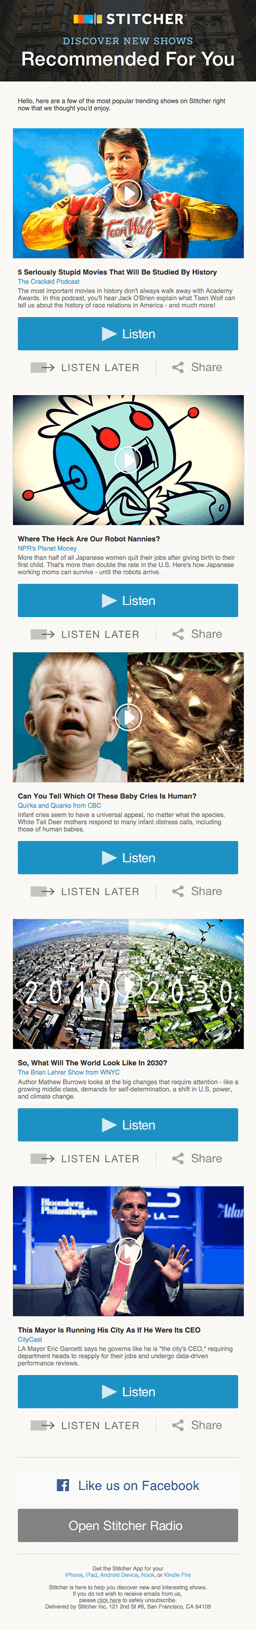 Example of an email marketing campaign from Stitcher using the content